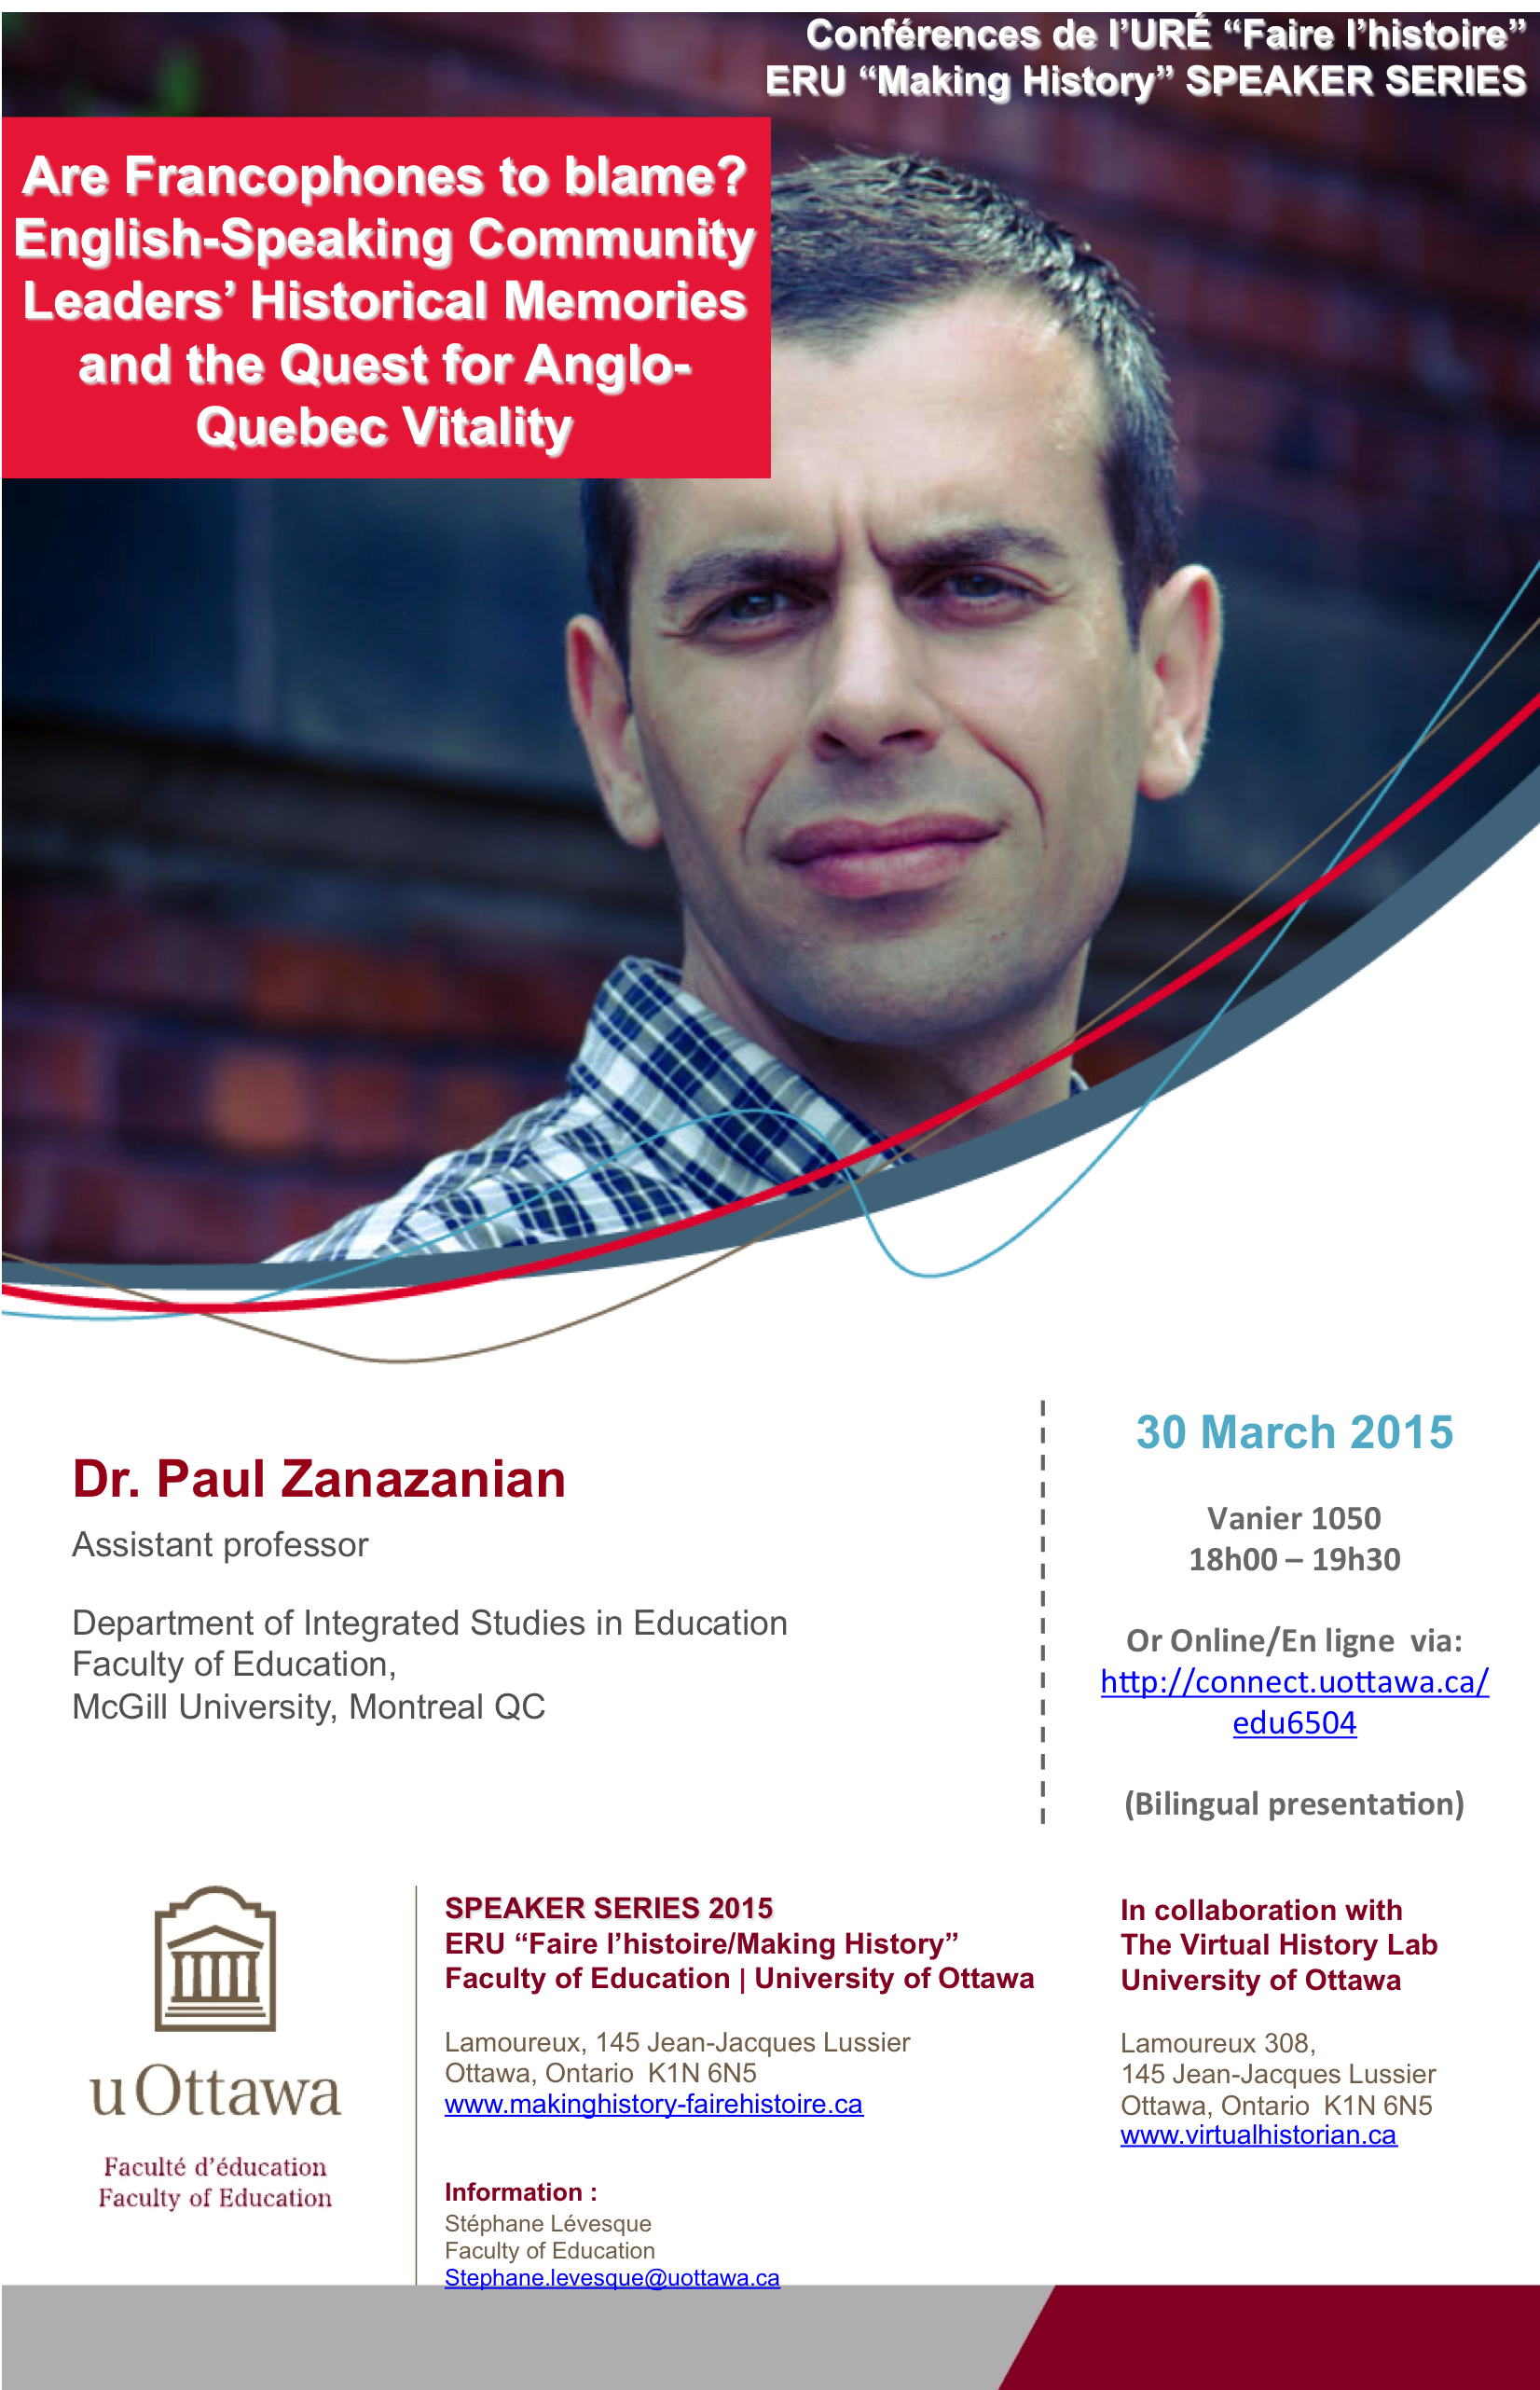 """As part of the ERU """"Making History"""" Speaker Series, associate professor with the Faculty of Education at McGill University, Paul Zanazanian, will be discussing the historical memories related to English-speaking community leaders and the ongoing quest for Anglo-Quebec vitality.   Attend in person or participate online: http://connect.uottawa.ca/edu6504"""